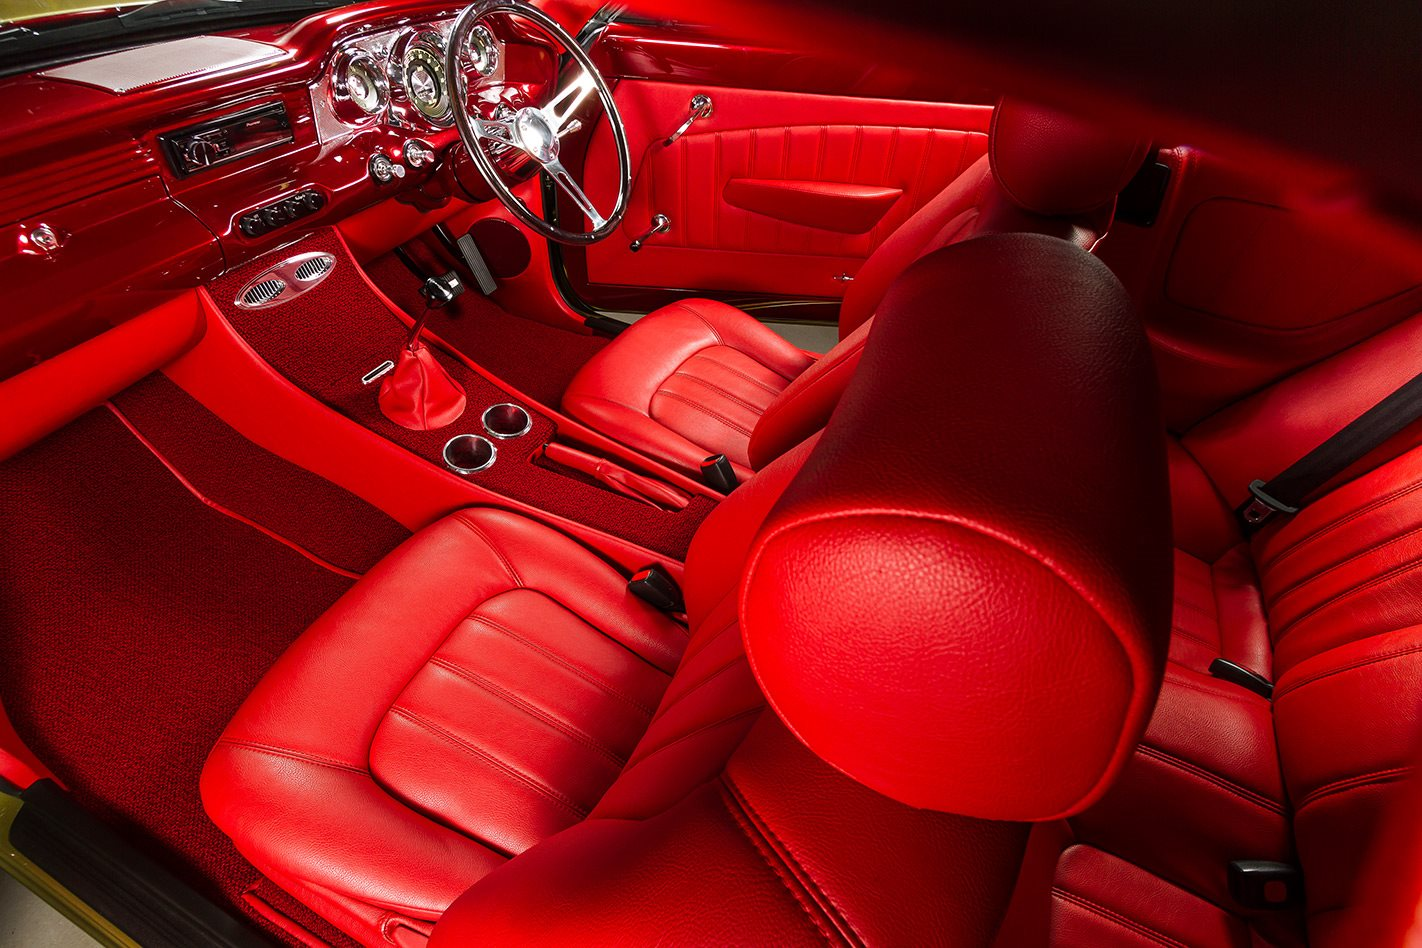 Holden FB Tailspin interior